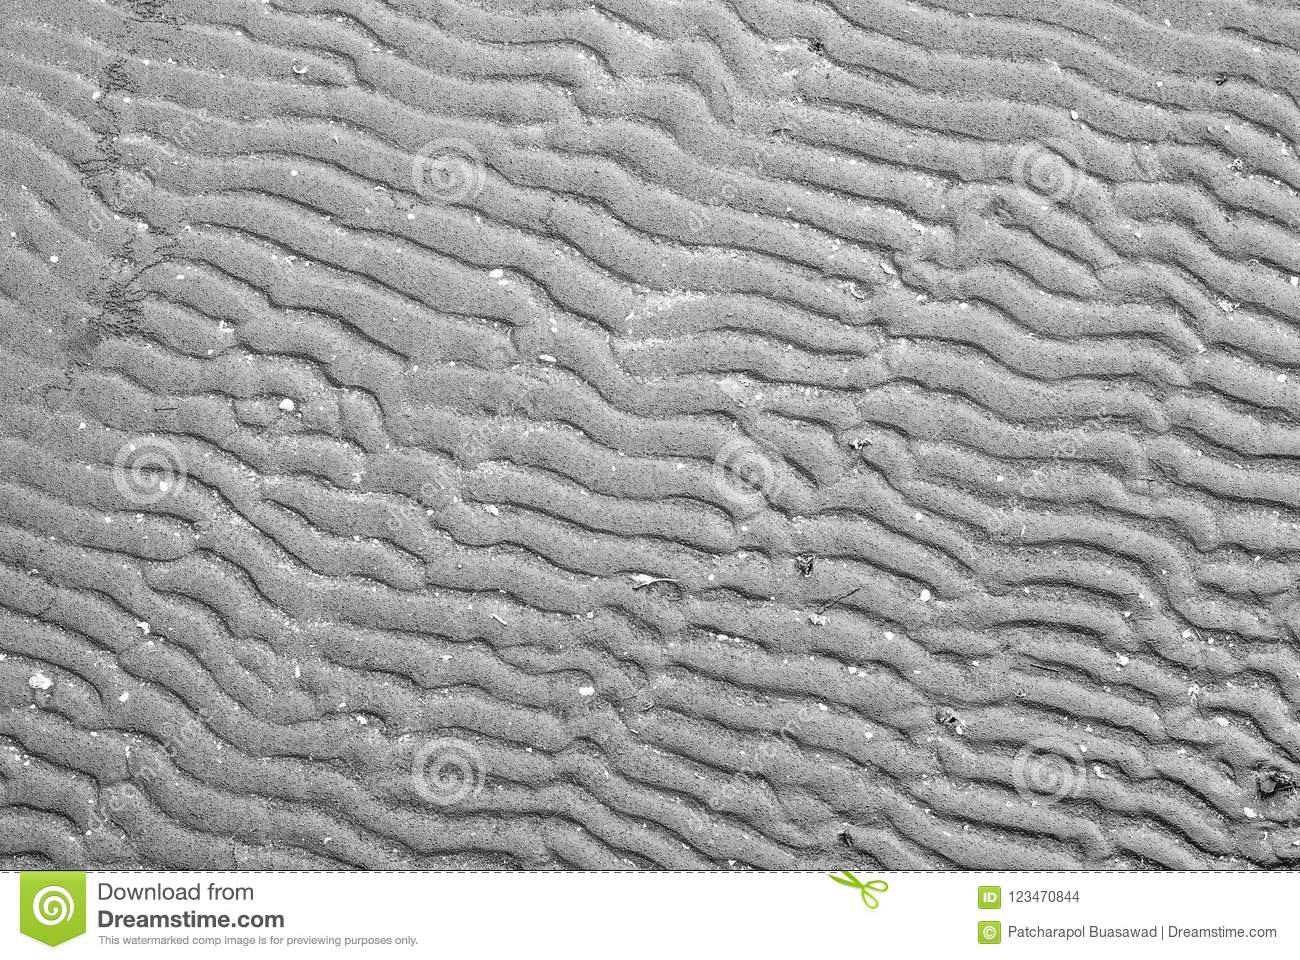 Black wet beach sand form in curve-line pattern for abstract background, nature beauty